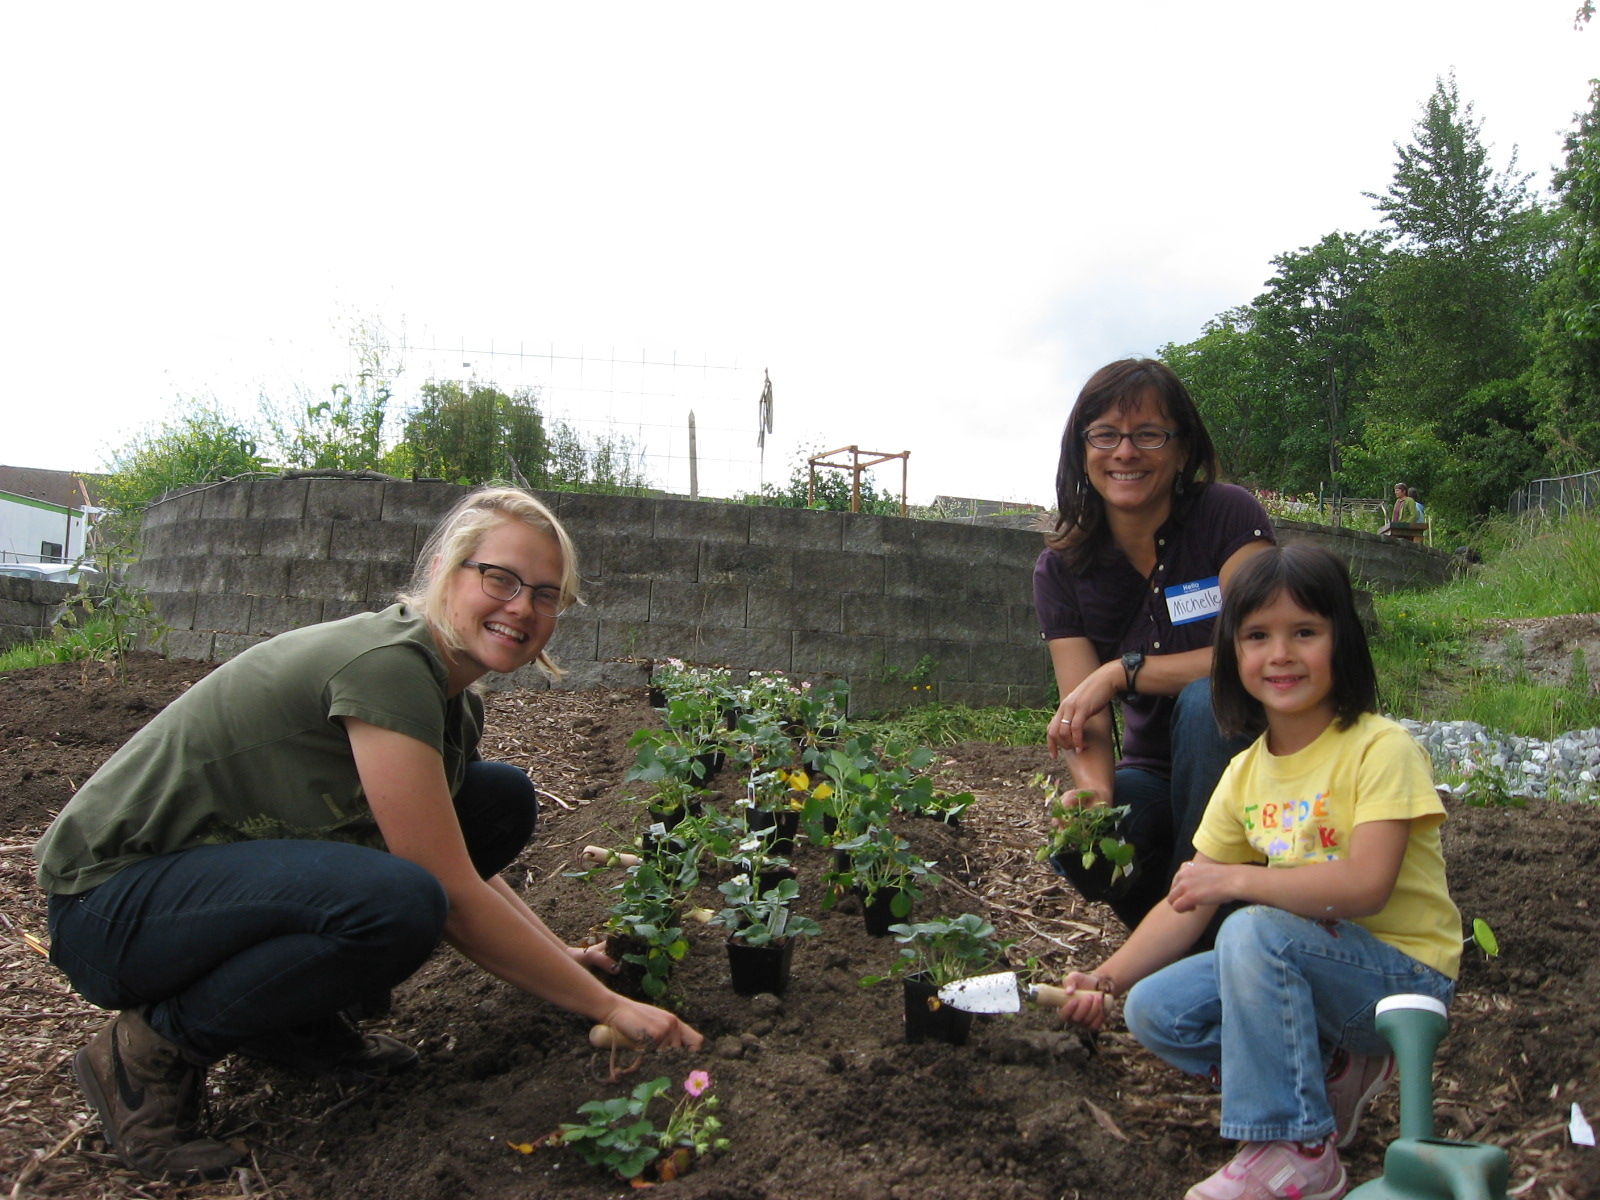 Michelle (center) with her duaghter (r) and staff member Amelia Swinton (l)